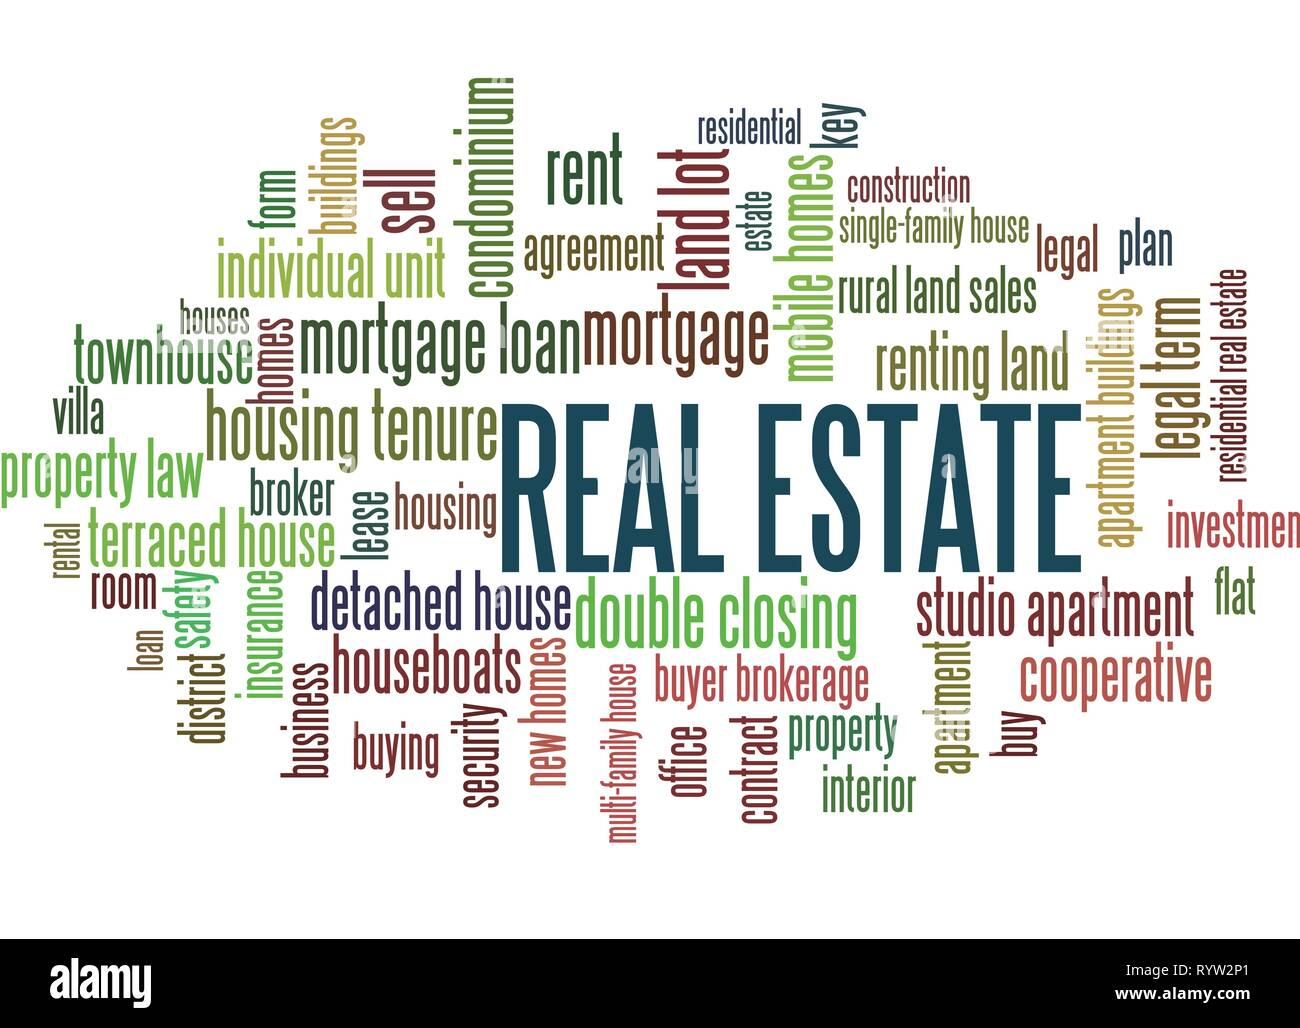 Real Estate Word Tag Cloud, shows words related to buy, sell or rent